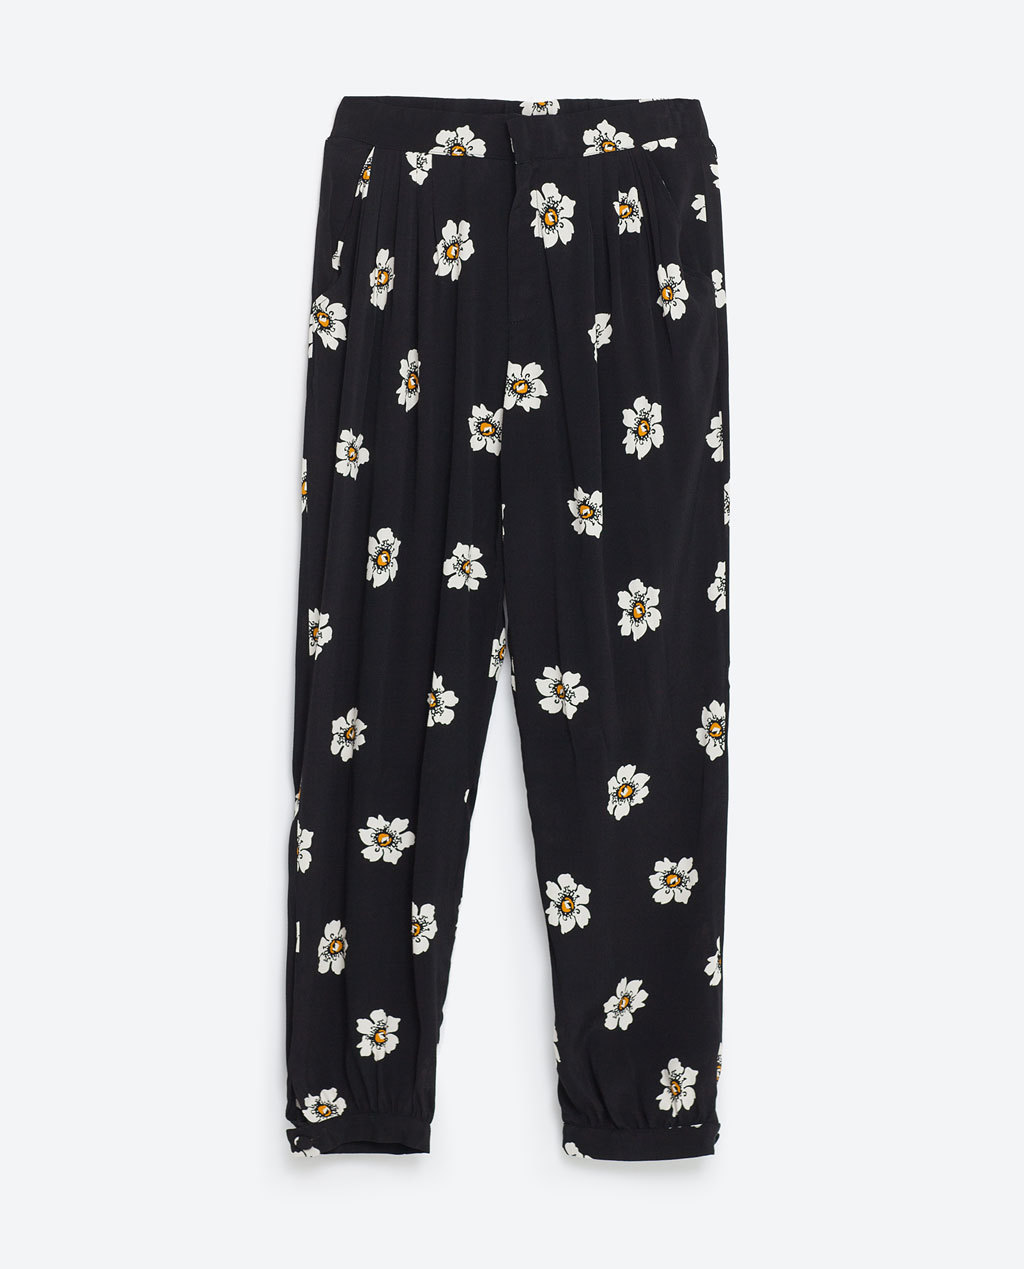 Loose Fit Trousers - length: standard; style: harem/slouch; waist: mid/regular rise; secondary colour: ivory/cream; predominant colour: black; occasions: casual; fibres: viscose/rayon - 100%; fit: baggy; pattern type: fabric; pattern: florals; texture group: woven light midweight; multicoloured: multicoloured; season: s/s 2016; wardrobe: highlight